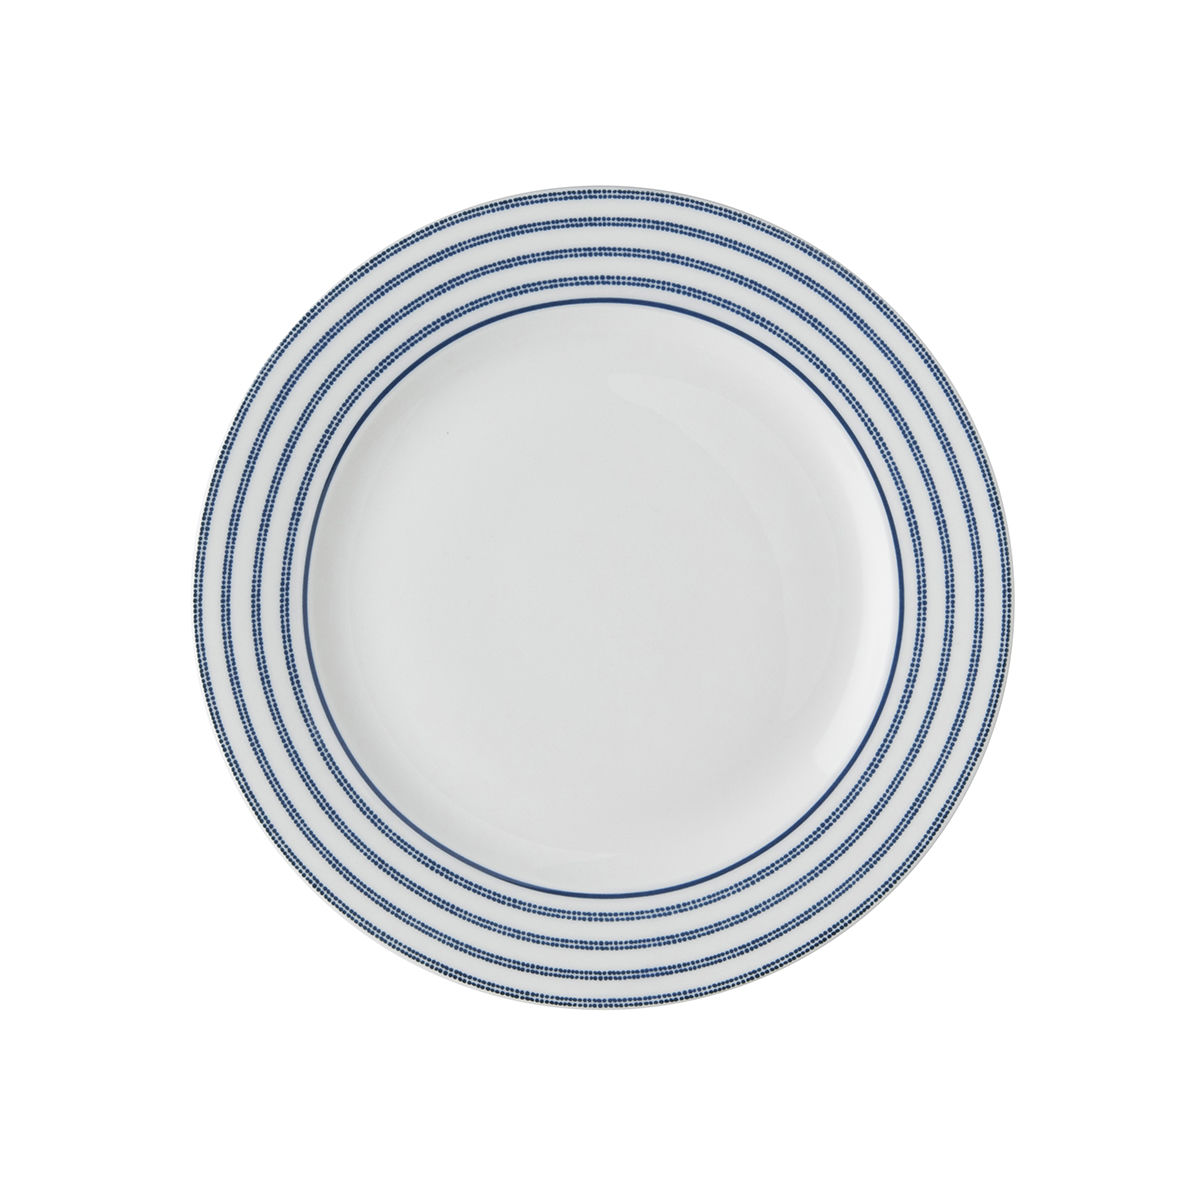 "Laura Ashley 6.85"" Plate Candy Stripe - product images  of"